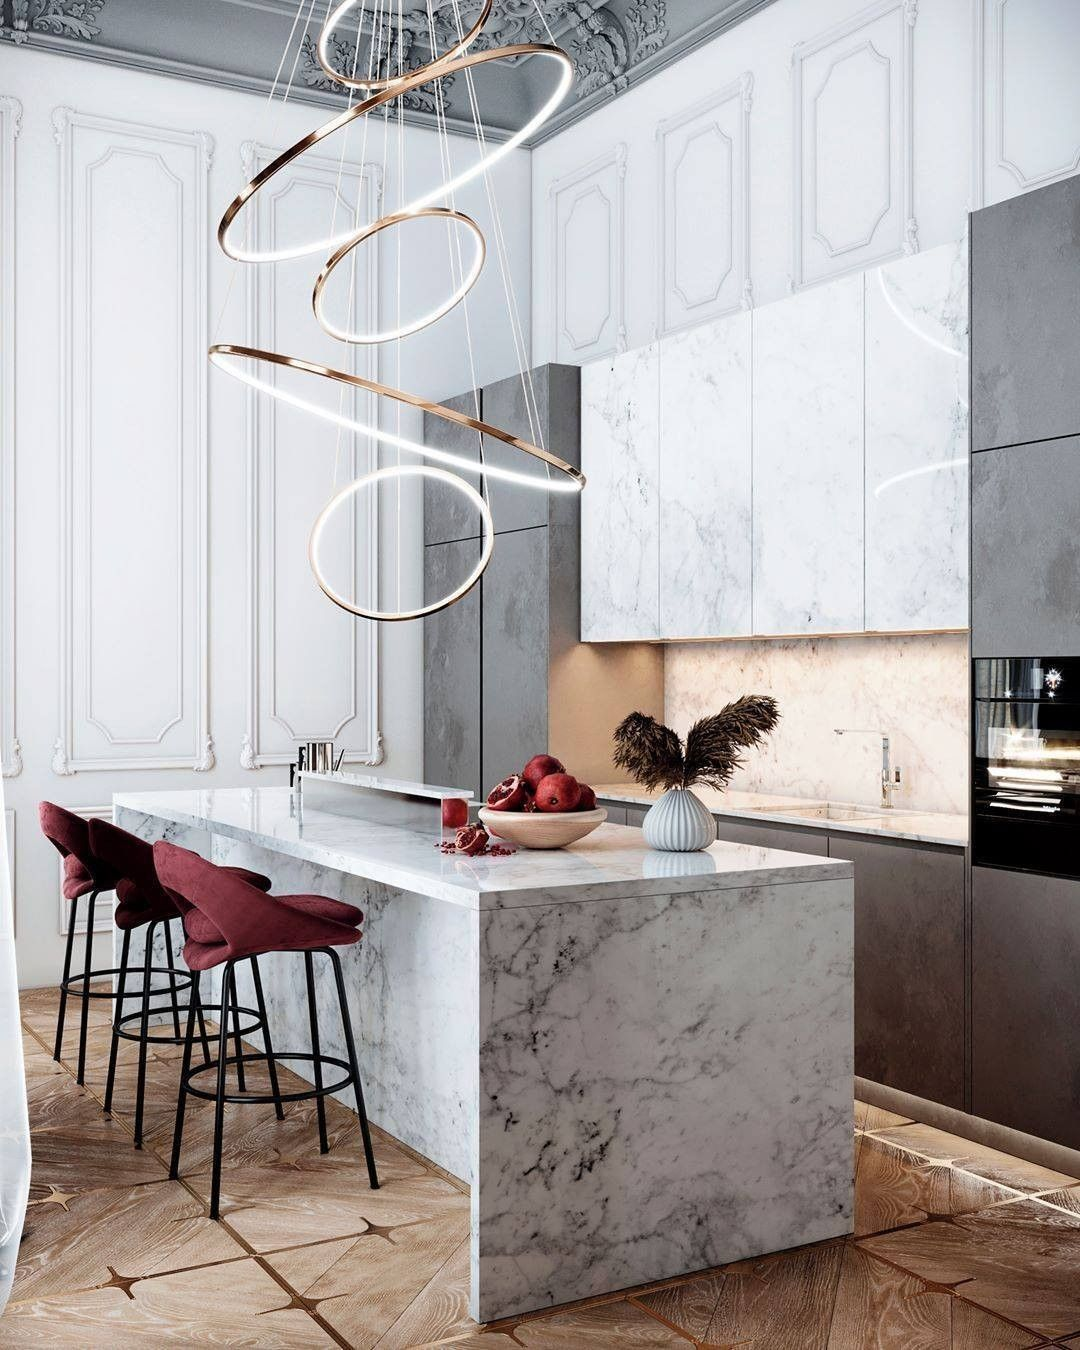 Surrounded by white colors and classic stylistics, this style looks more than appropriate and noble. What do you like most about this kitchen?  #kitchen #marble #interiordesign #grwdevelopments #ModernDesign #worldofinteriors #moderninteriors #interiormilk #sidetablestyling #kitchendesign #bestinterior #classyinterior #cabinetry #marblekitchen #kitchendesigns #kitchencountertops #quartzite #kitchenrenovation #kitchendesignideas #marblehome #marbledesign #marbleinterior #beautifulmarble #newkitch